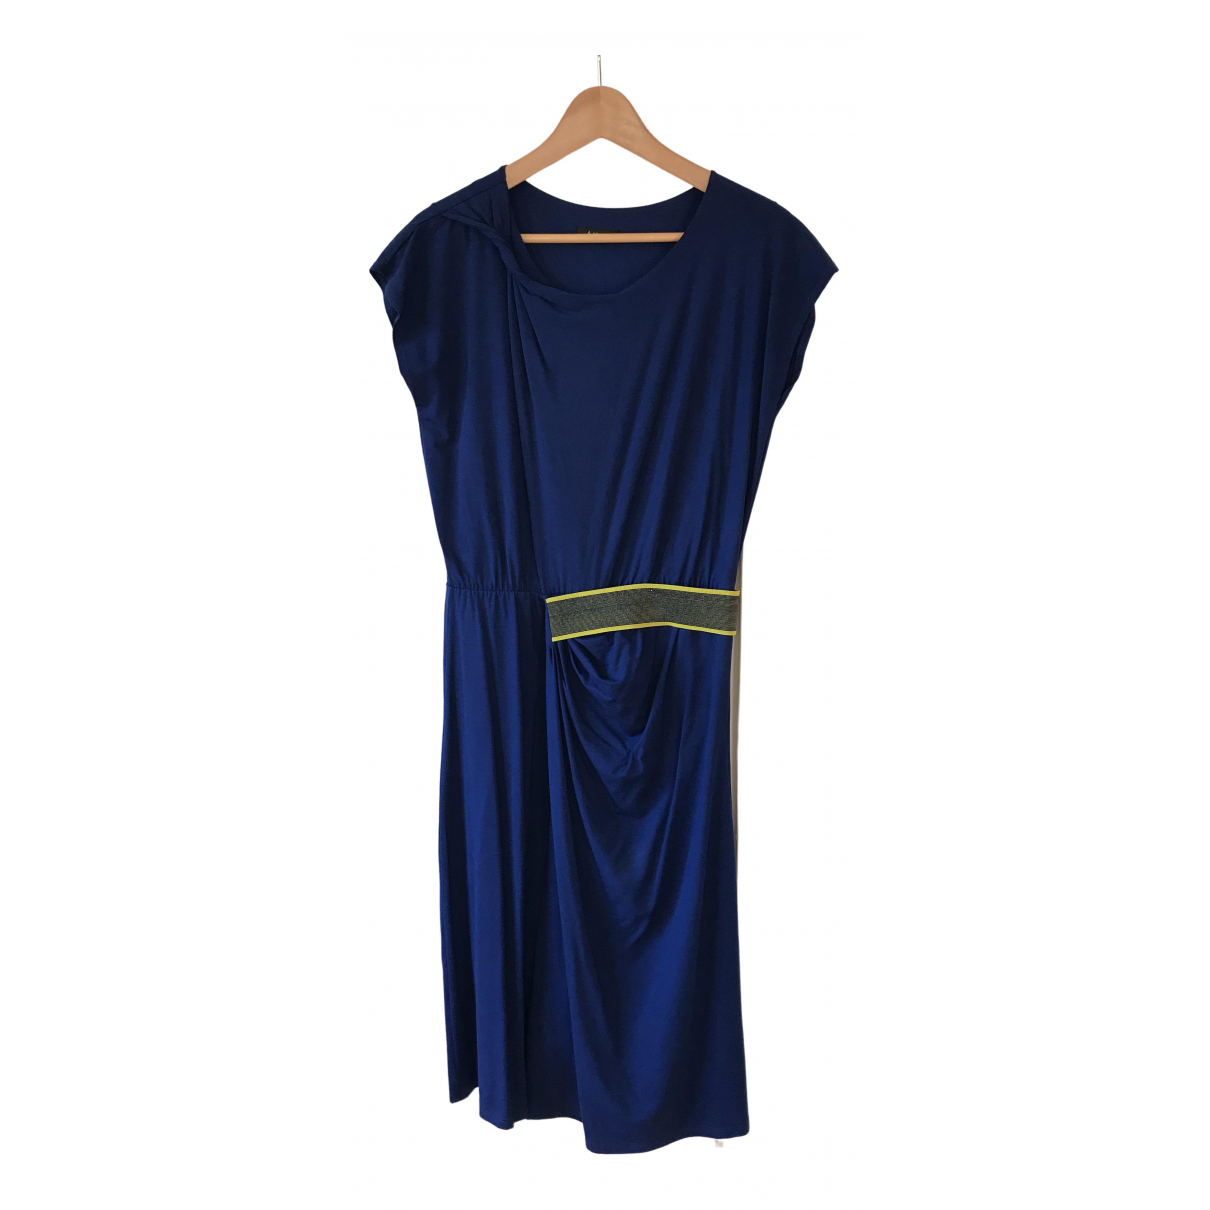 Paul Smith \N Blue Cotton dress for Women M International